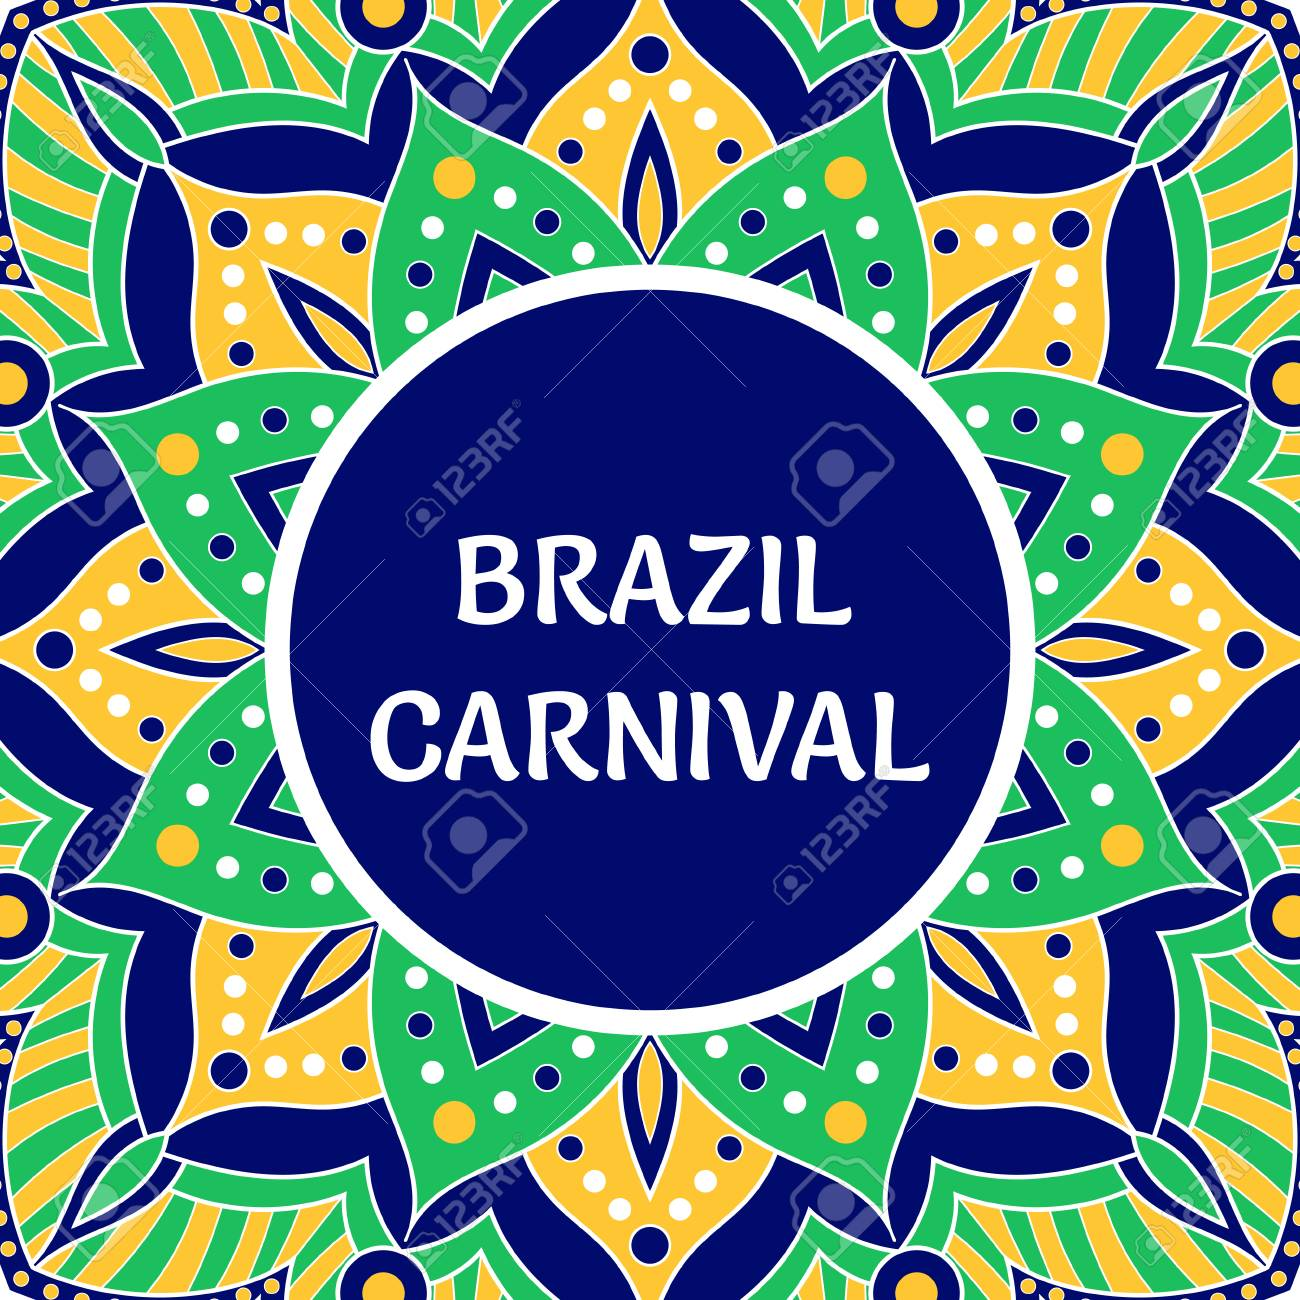 Brazil Carnival Illustration Vector Tropical Colorful Background Royalty Free Cliparts Vectors And Stock Illustration Image 111883221